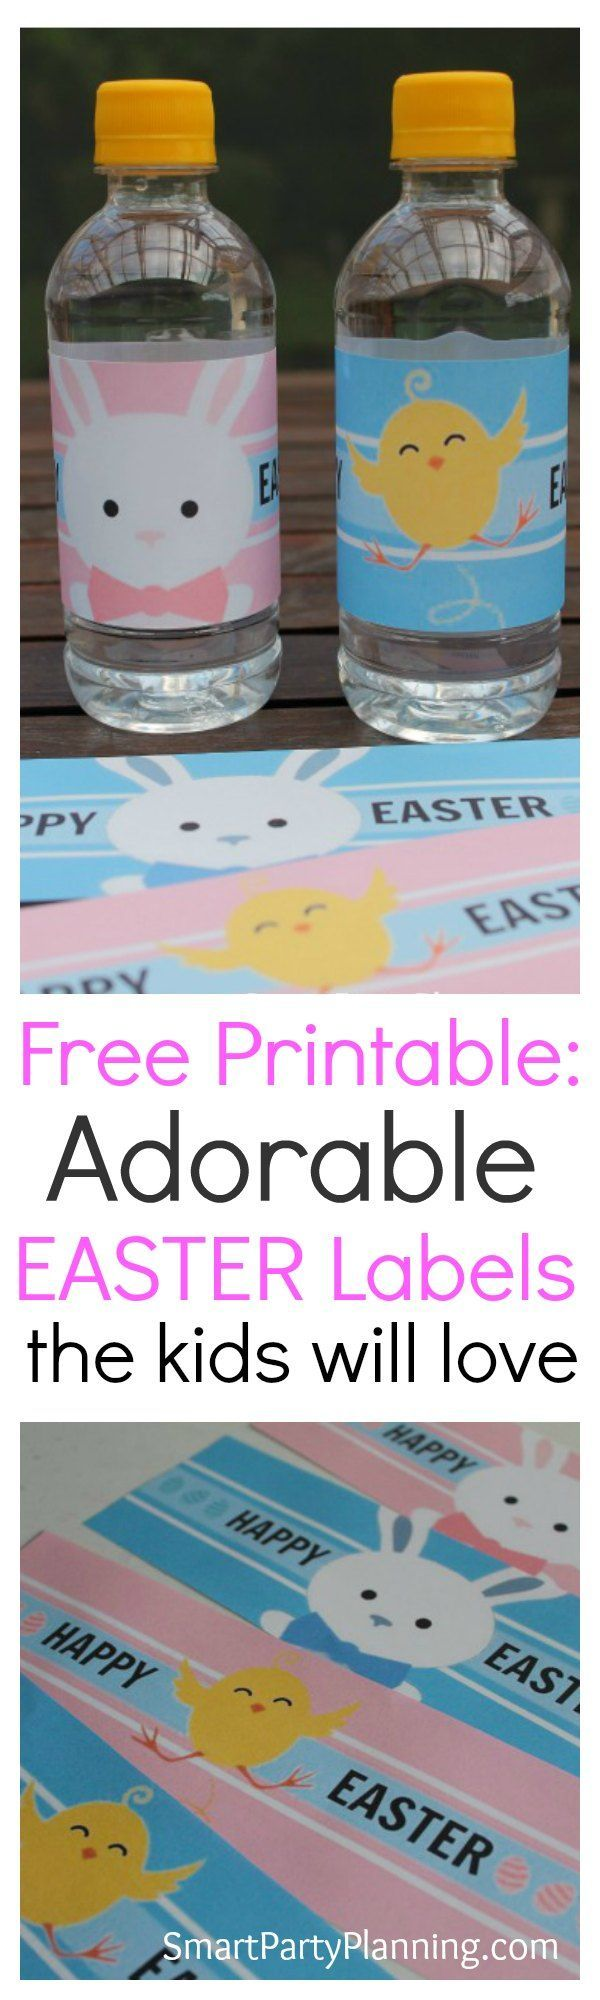 Free Easter water bottle labels. With adorable bunnies and chicks, the kids will love these printable labels to help celebrate Easter. Perfect for water or soda bottles, they are available for instant download.  They are great to use at Easter parties or simply to pack in the lunch box. #Kids #Printable #Easter #Waterbottlelabels